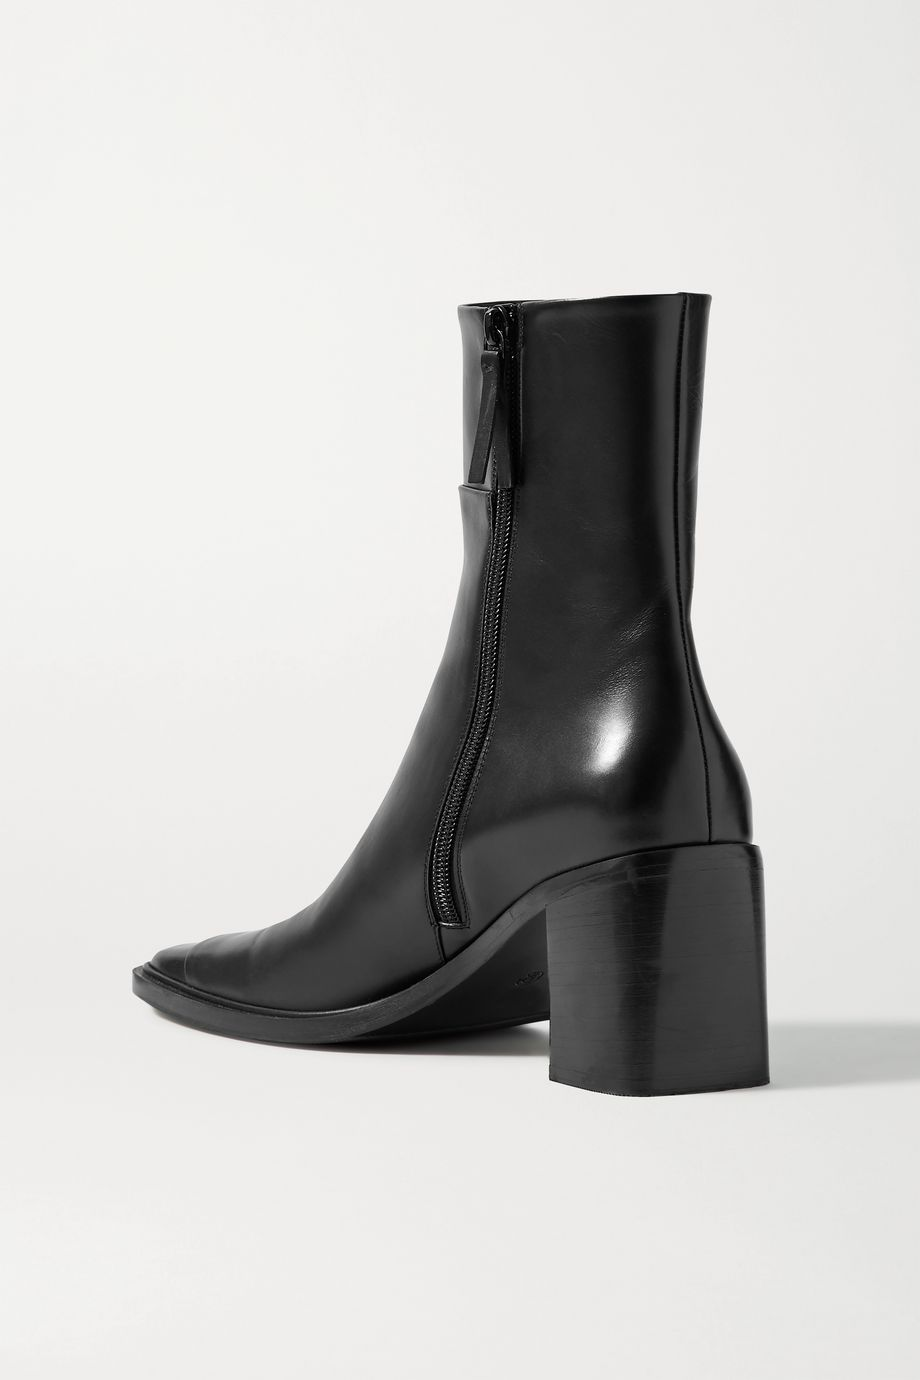 Patch paneled leather ankle boots by THE ROW, available on net-a-porter.com for EUR1275 Kendall Jenner Shoes Exact Product